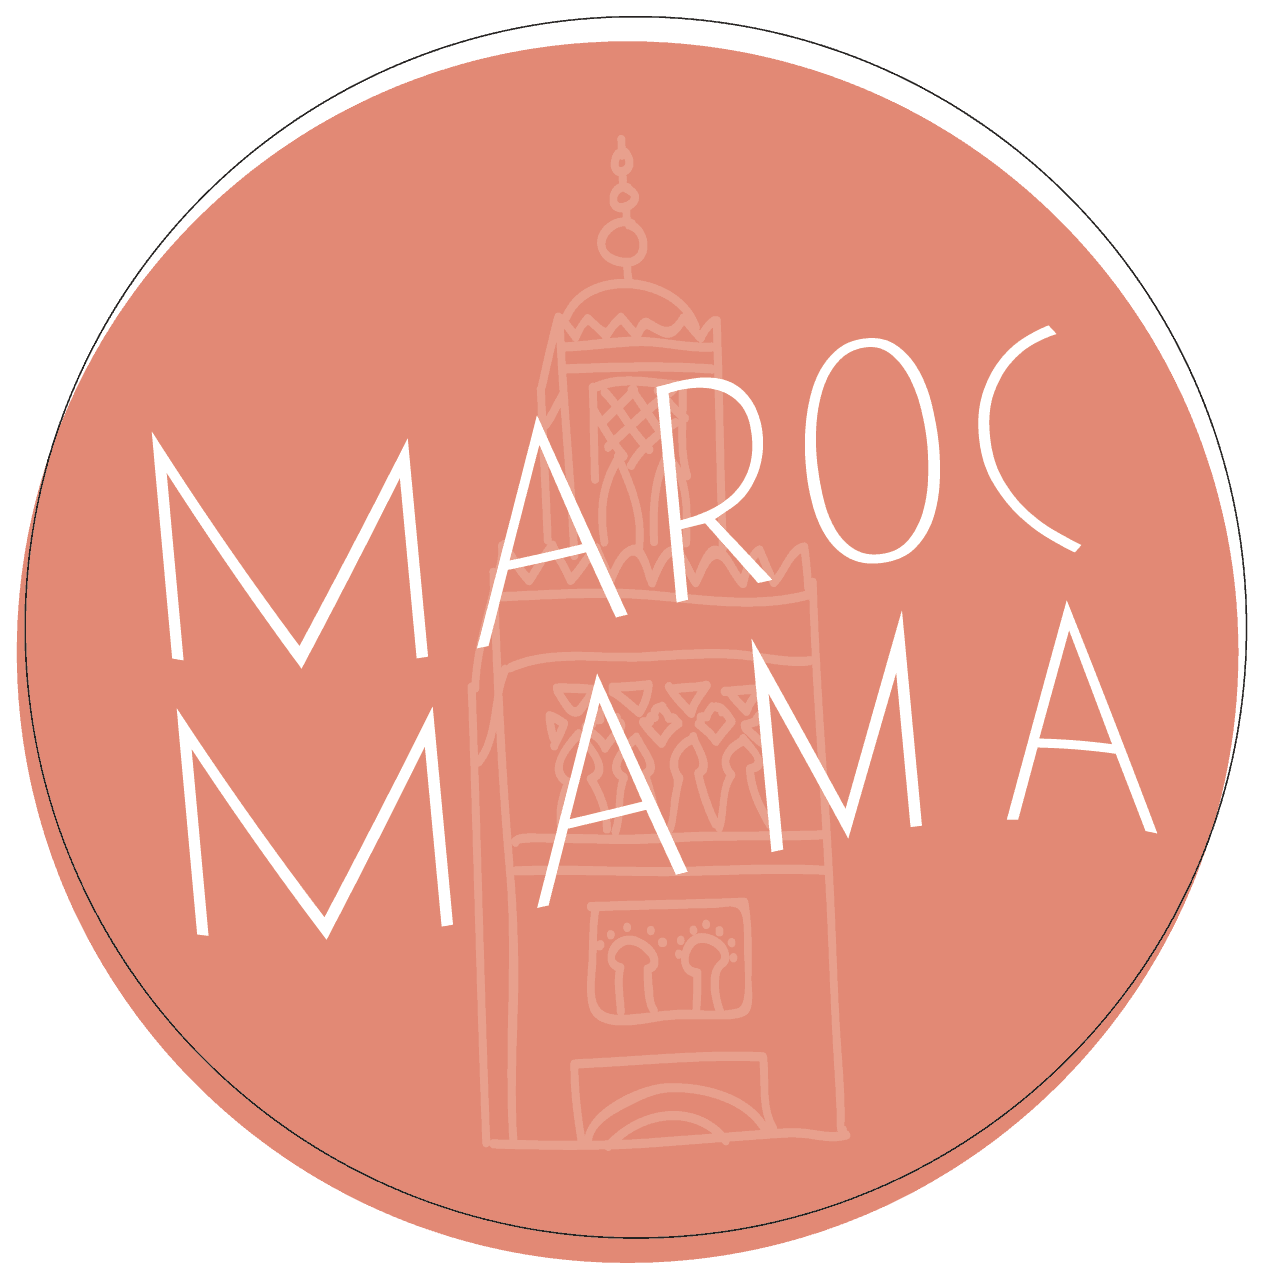 Marokko Online Shop Marrakech Scams The Taxi Scam And How To Avoid It Marocmama